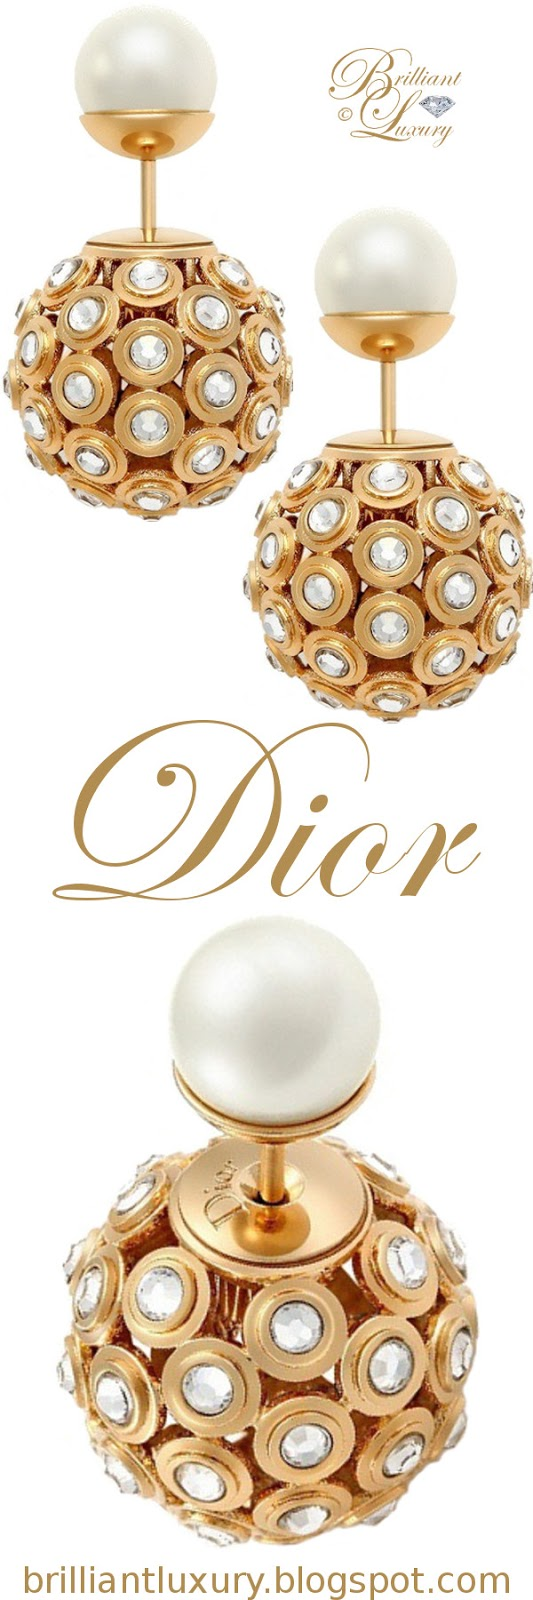 Brilliant Luxury ♦ Dior 'Mise en Dior' tribal-inspired gold earrings with diamonds